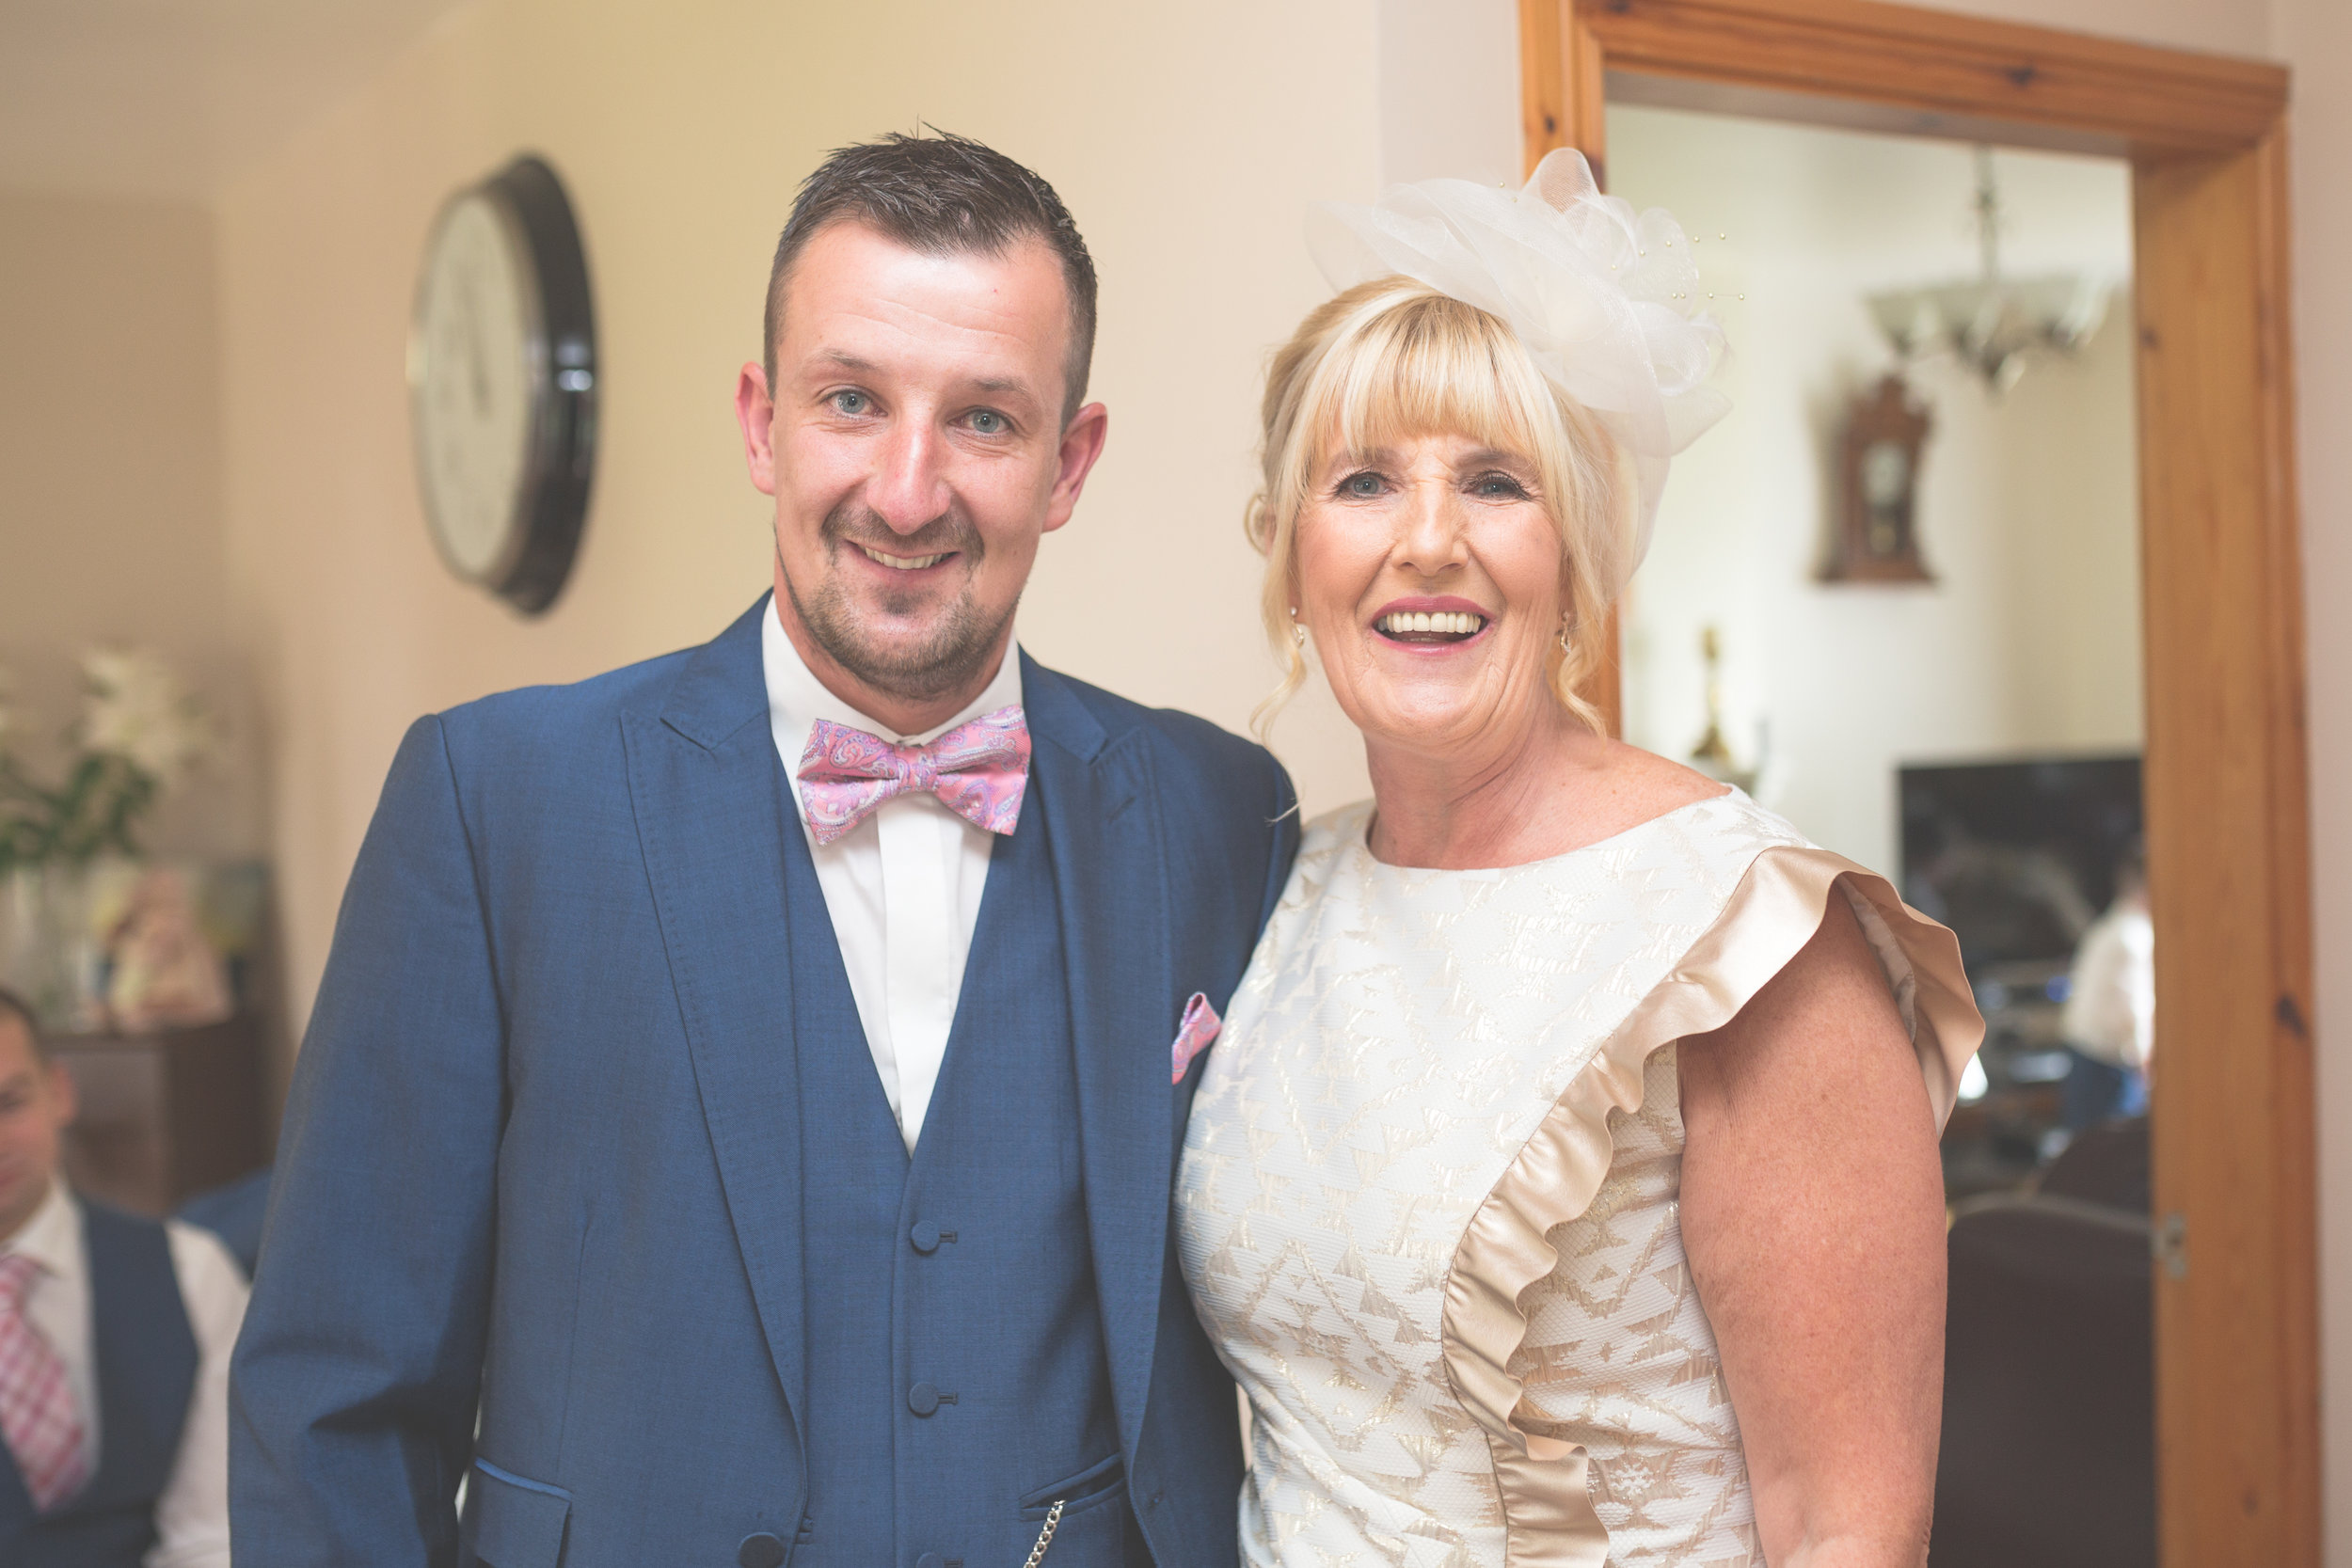 Antoinette & Stephen - Groom & Groomsmen | Brian McEwan Photography | Wedding Photographer Northern Ireland 48.jpg